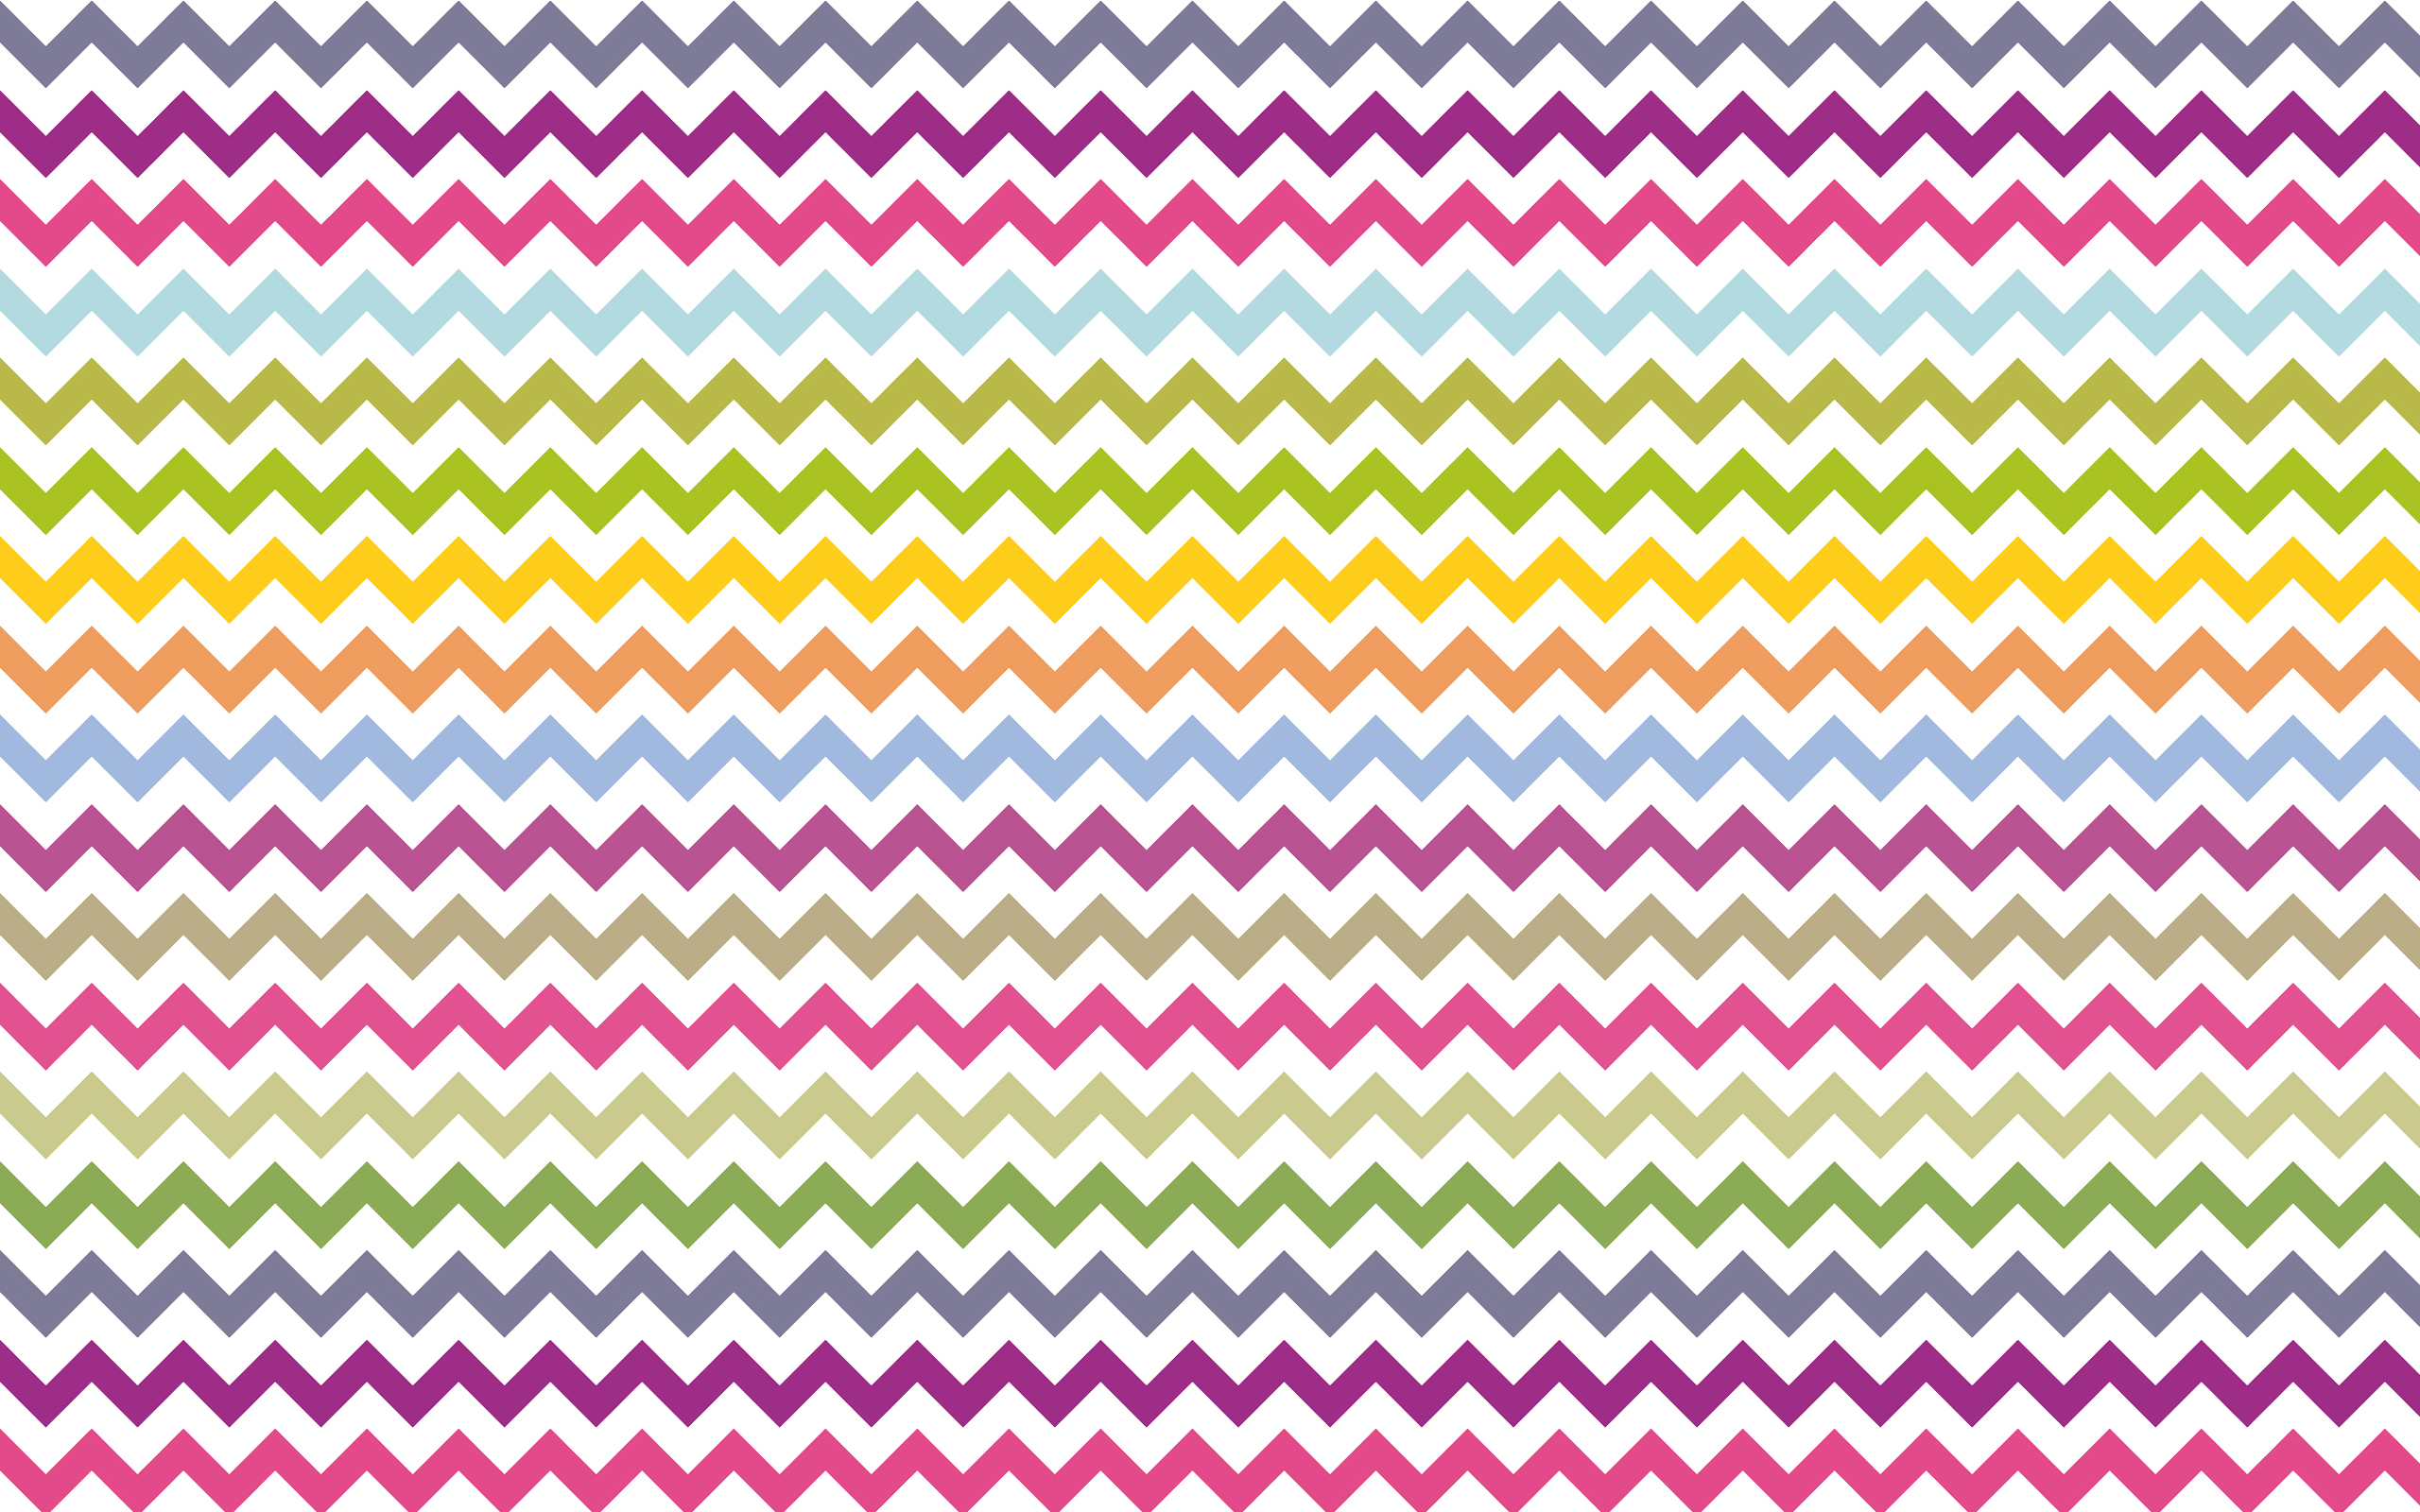 My colorful chevron desktop wallpaper   Another House Blog 2560x1600